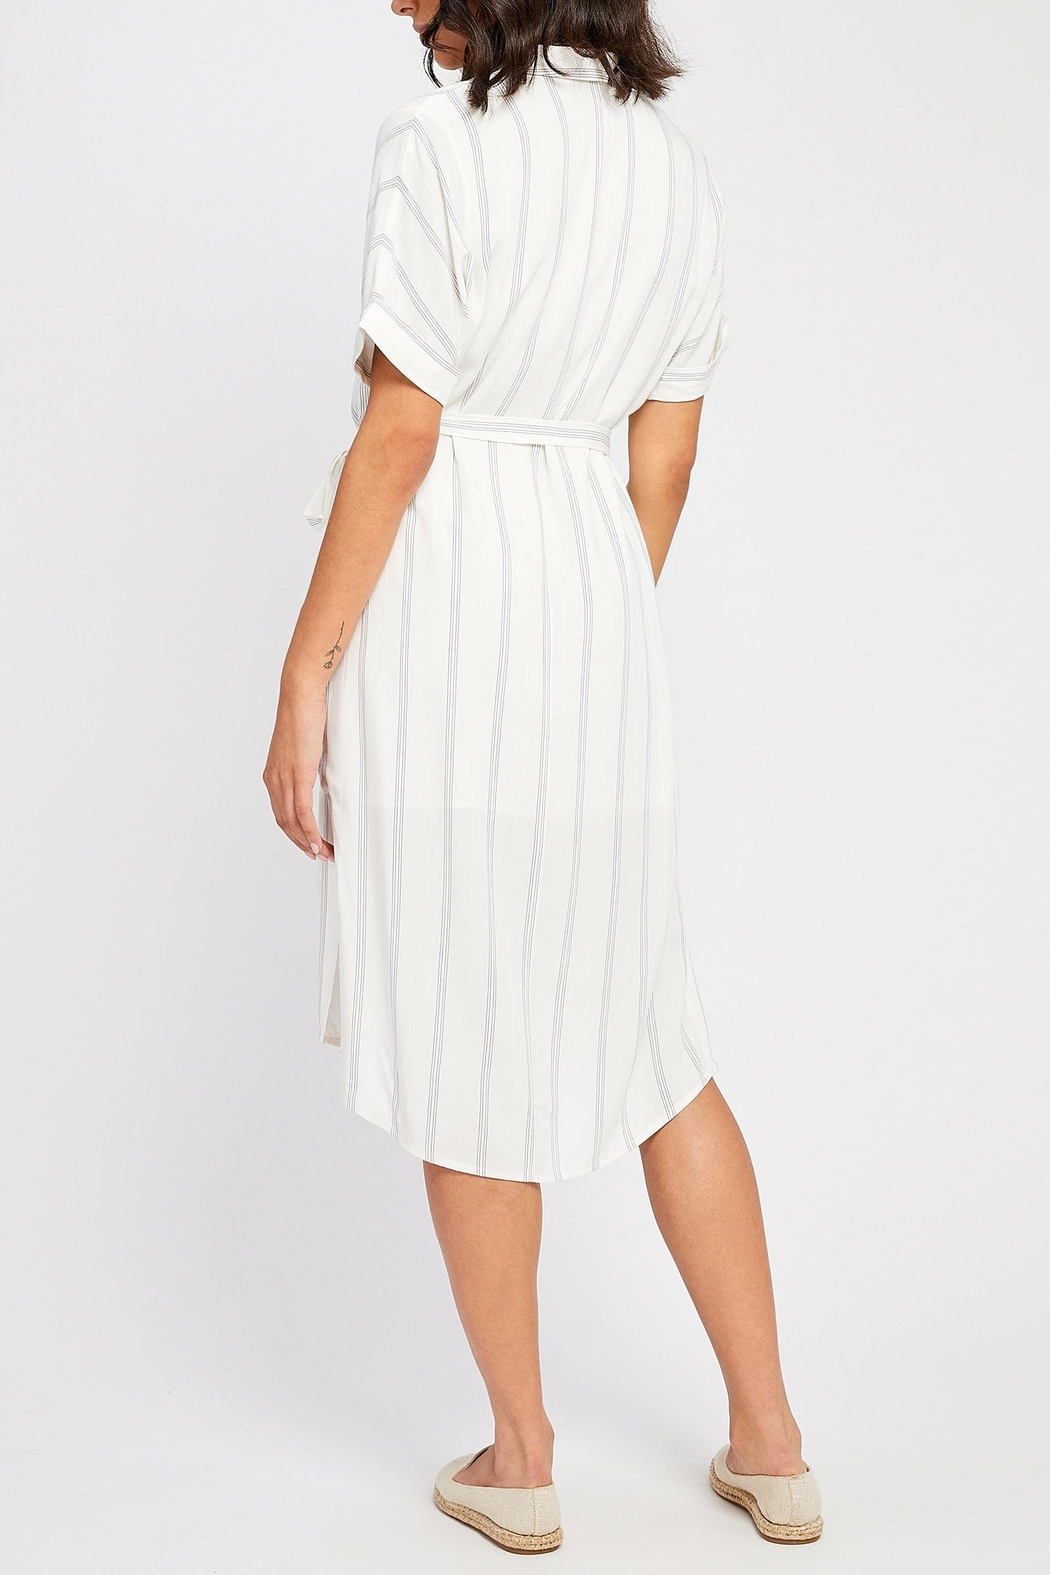 Gentle Fawn Kaysey Dress - Front Full Image